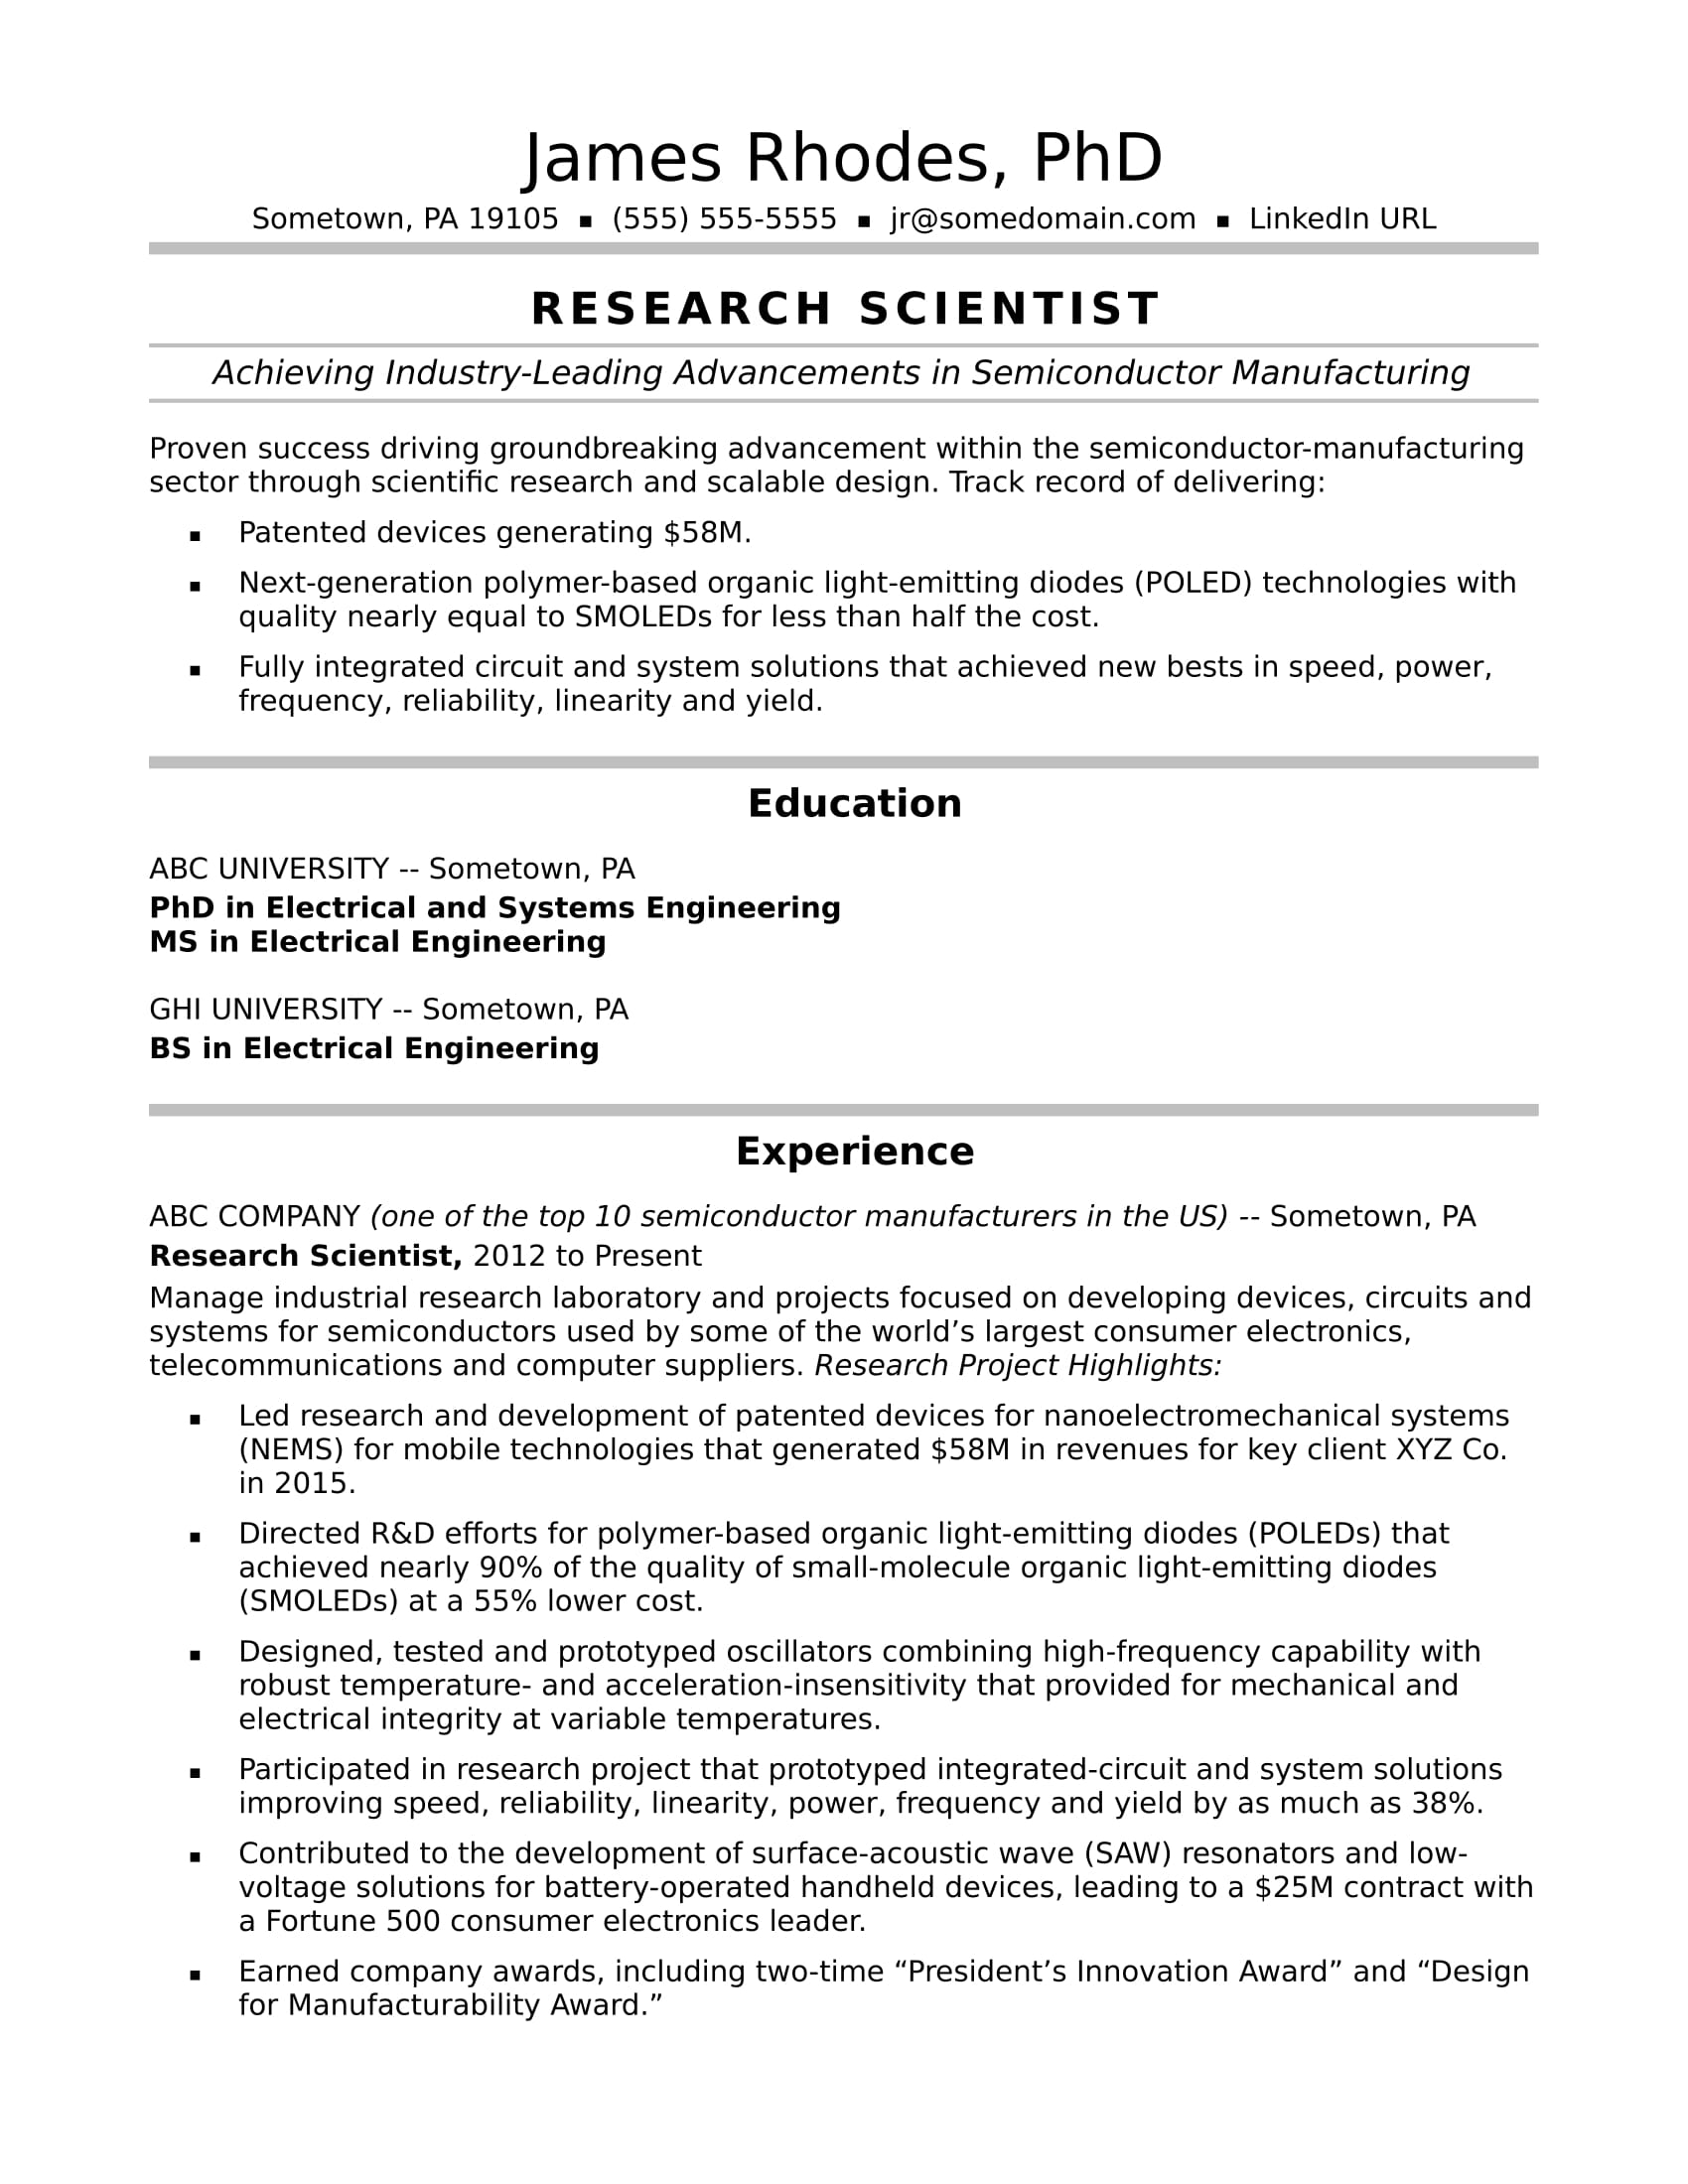 Sample Resume For A Research Scientist  Resume For Job Application Example